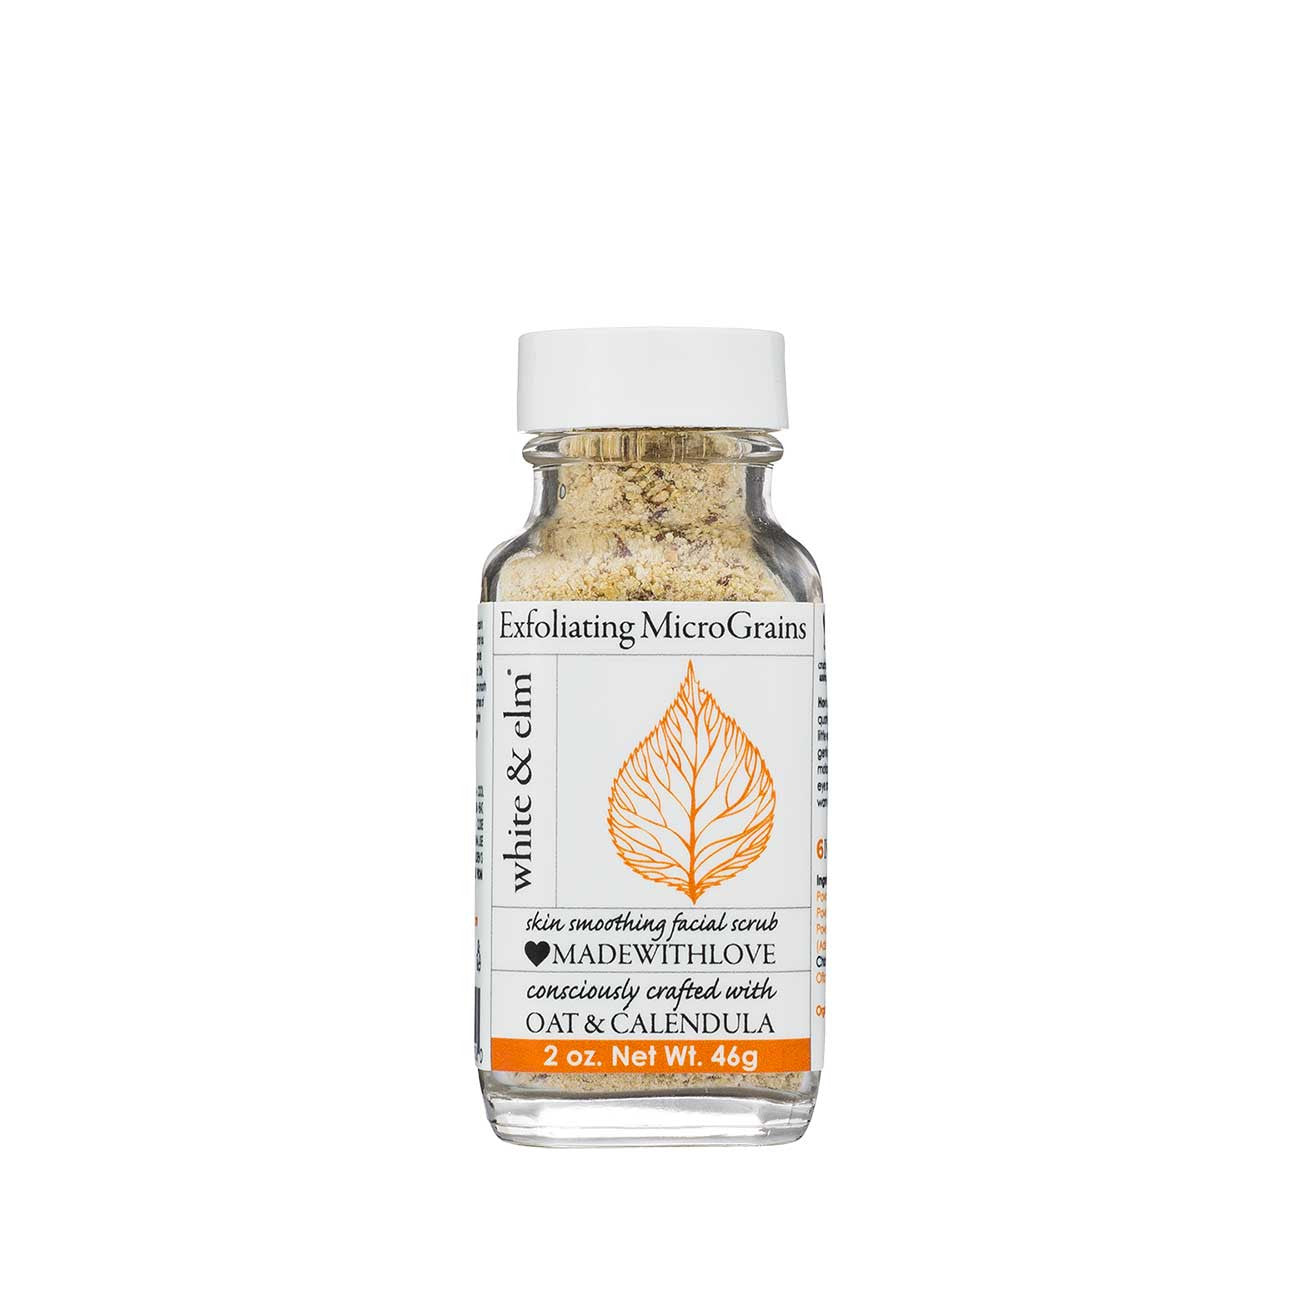 Exfoliating MicroGrains travel size